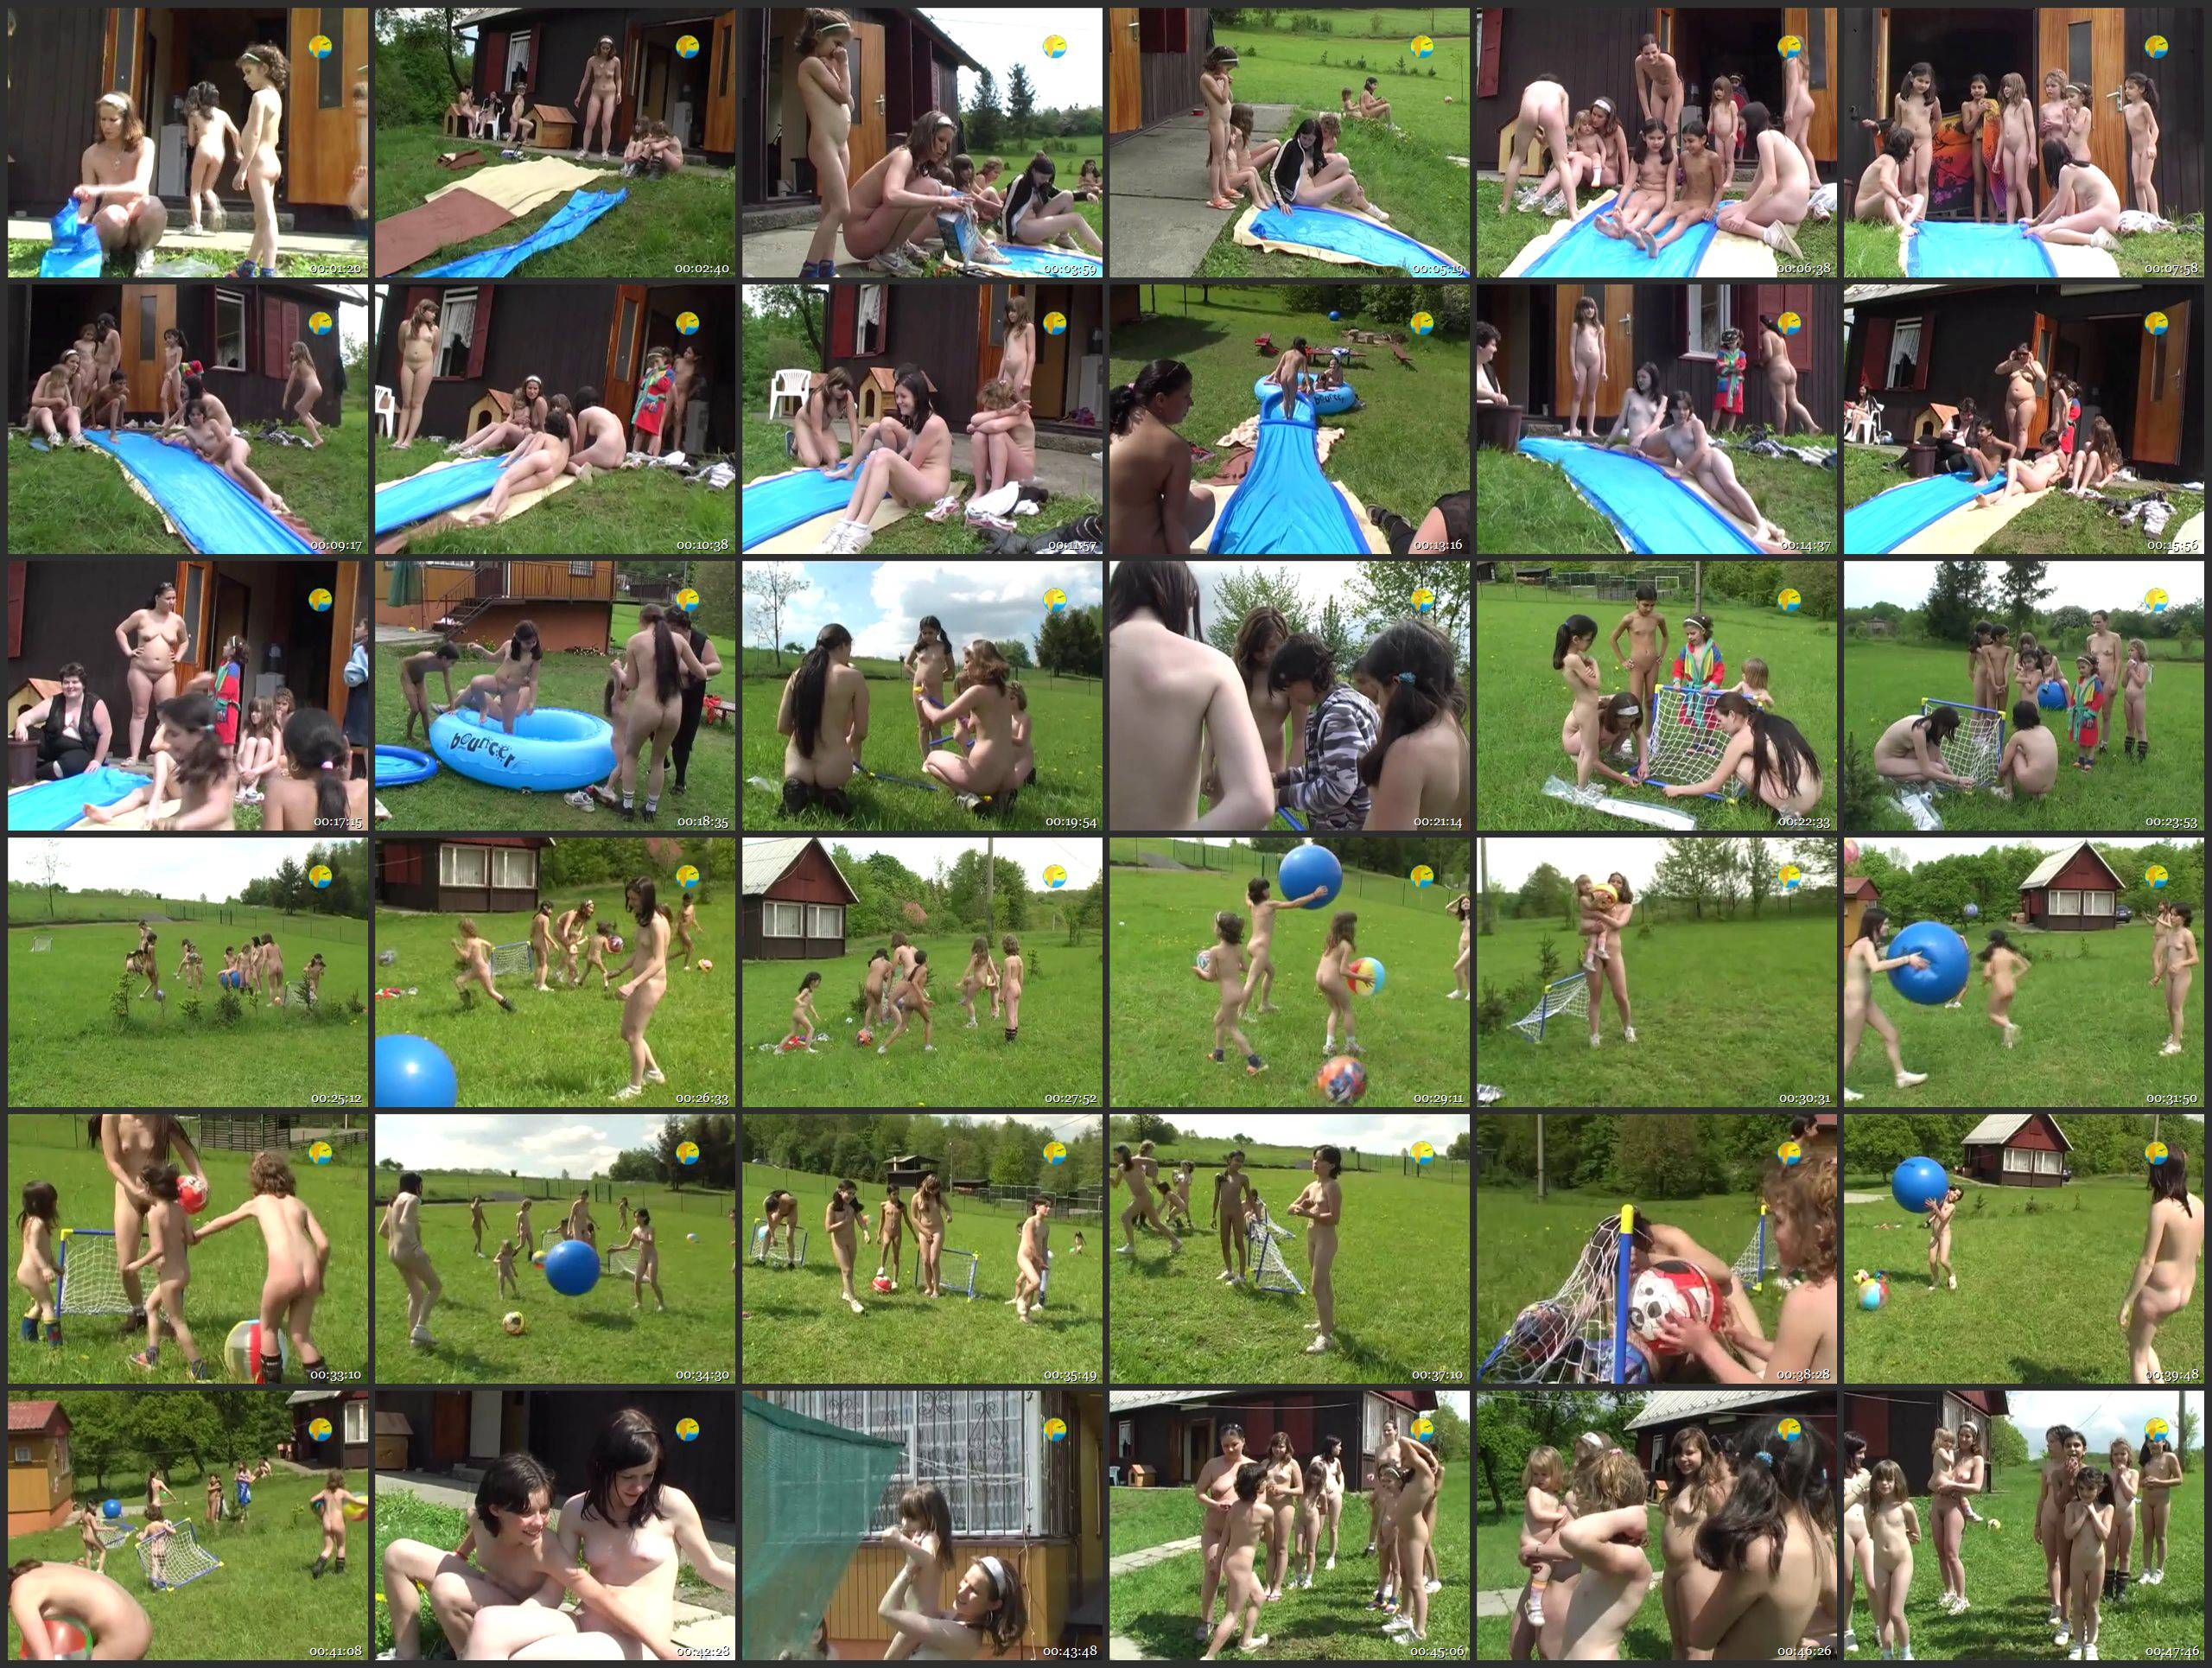 Naturist Freedom-Slide in the Summer - Thumbnails